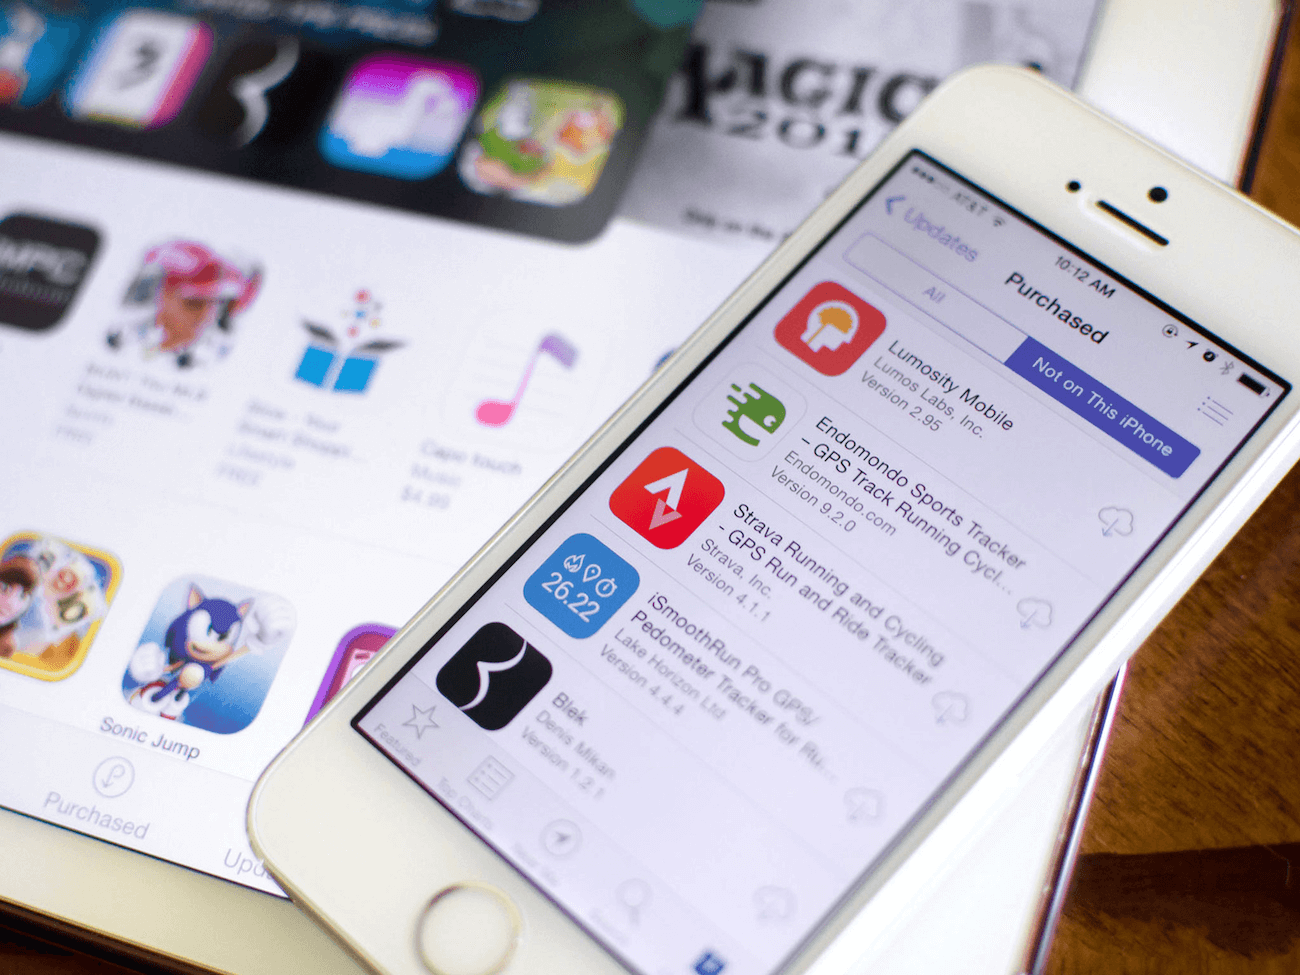 Users complain of problems with top free App Store